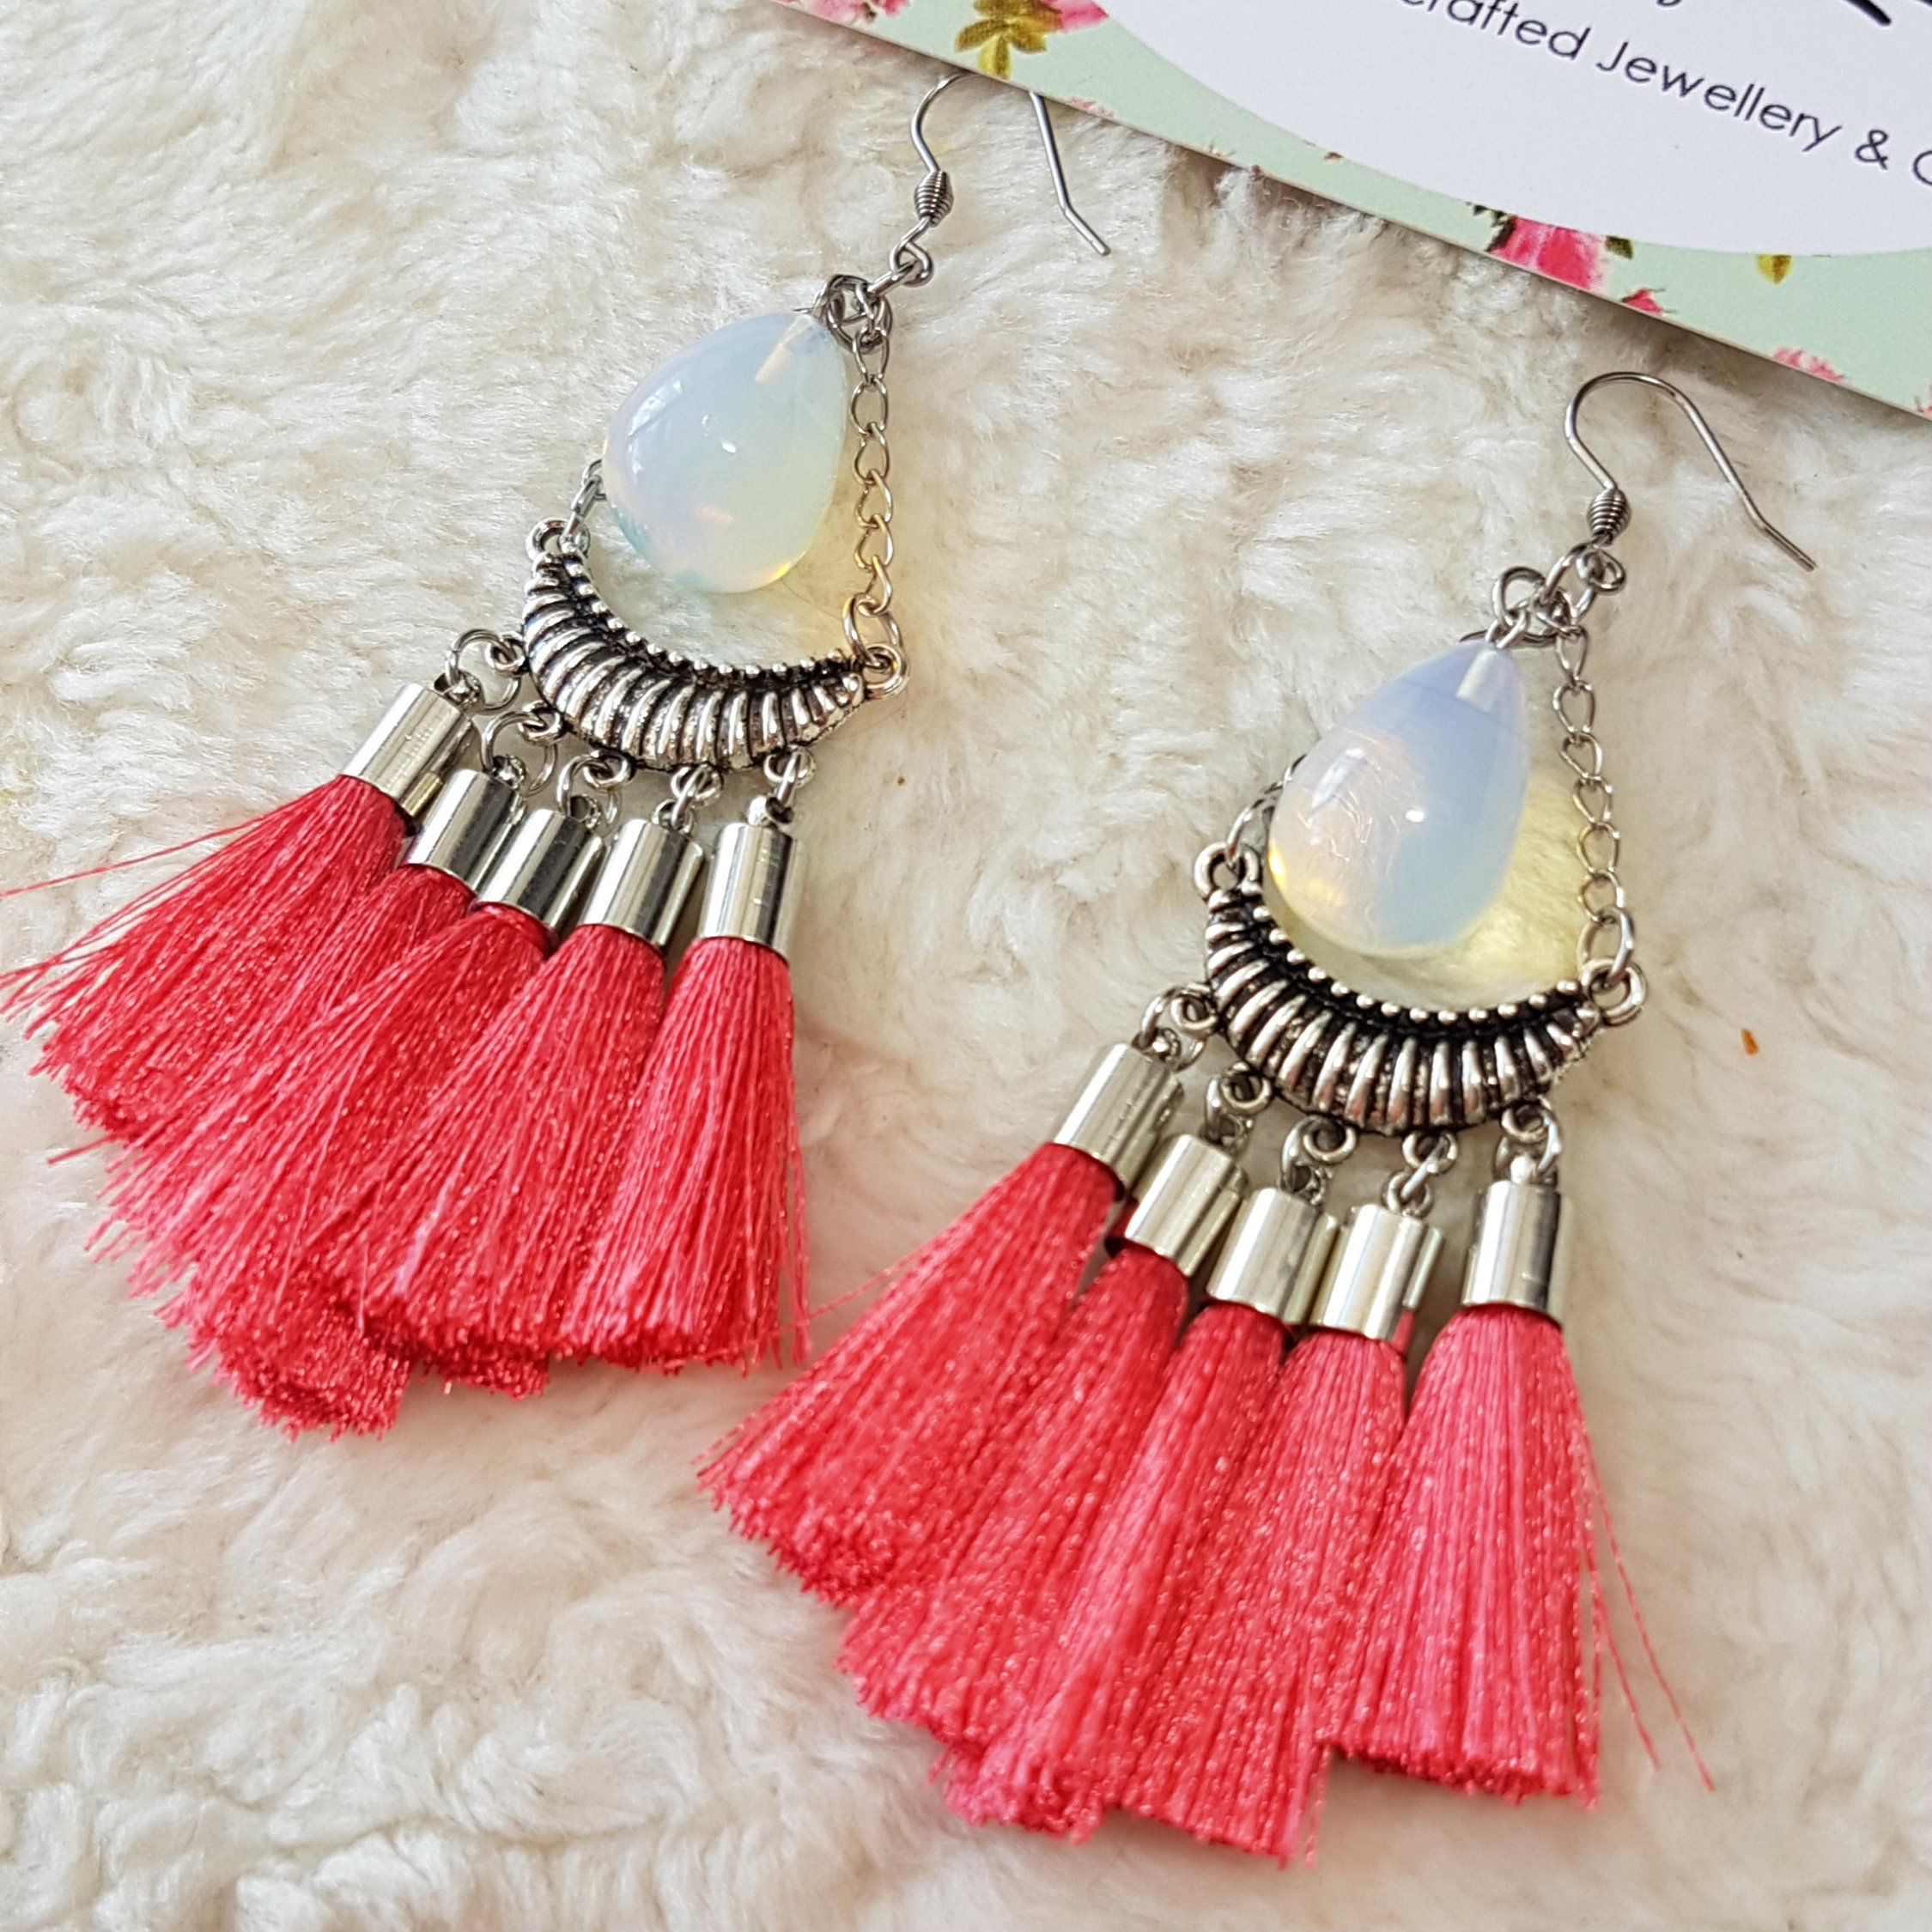 to earrings starfish all tassle click enlarge mollie project shop jewelry teal tassel